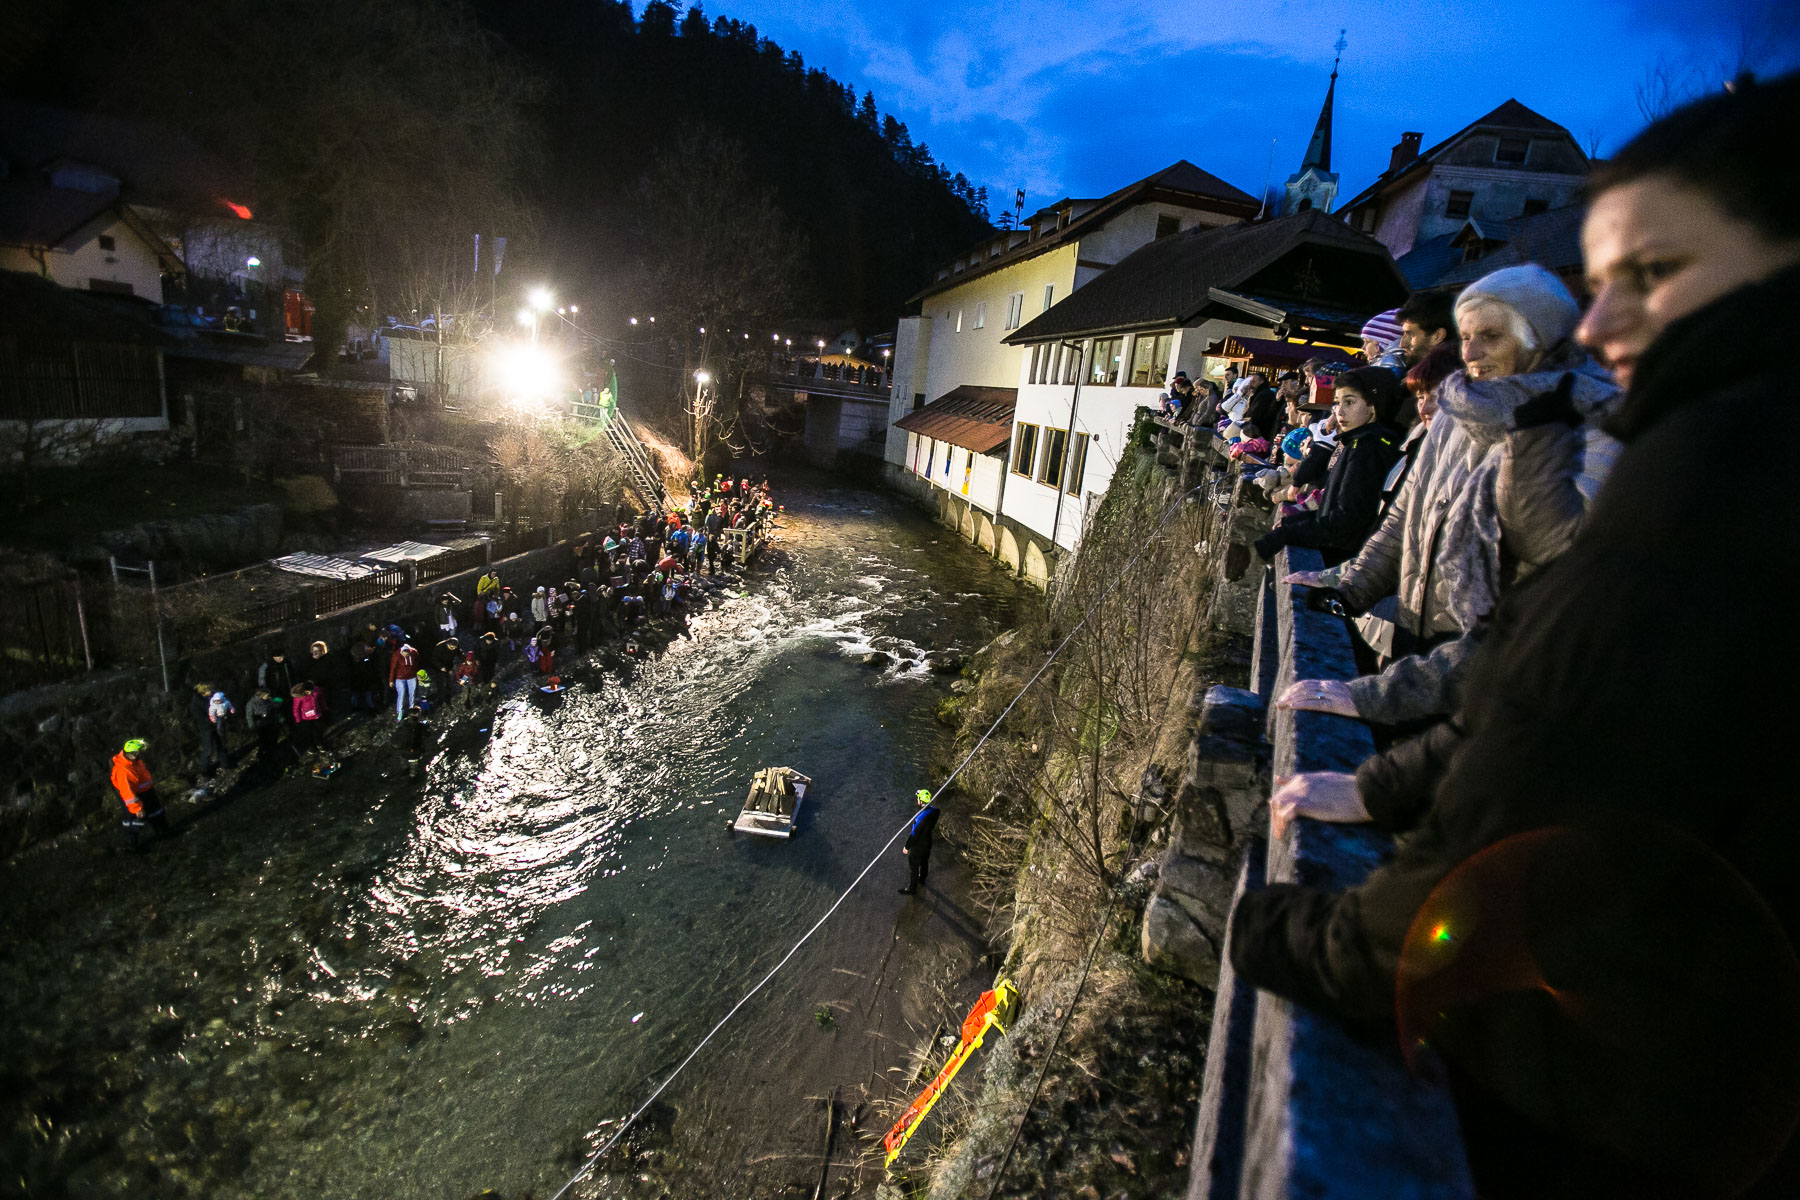 People watch the release of hundreds of model houses or {quote}gregorcki{quote} down the river during a traditional event called Light in the water, in which model houses and other objects are lit with candles and thrown in the water to symbolize the coming of spring, in Trzic, Slovenia, on March 11, 2016, the eve before St. Gregory's Day that was once the first day of spring.